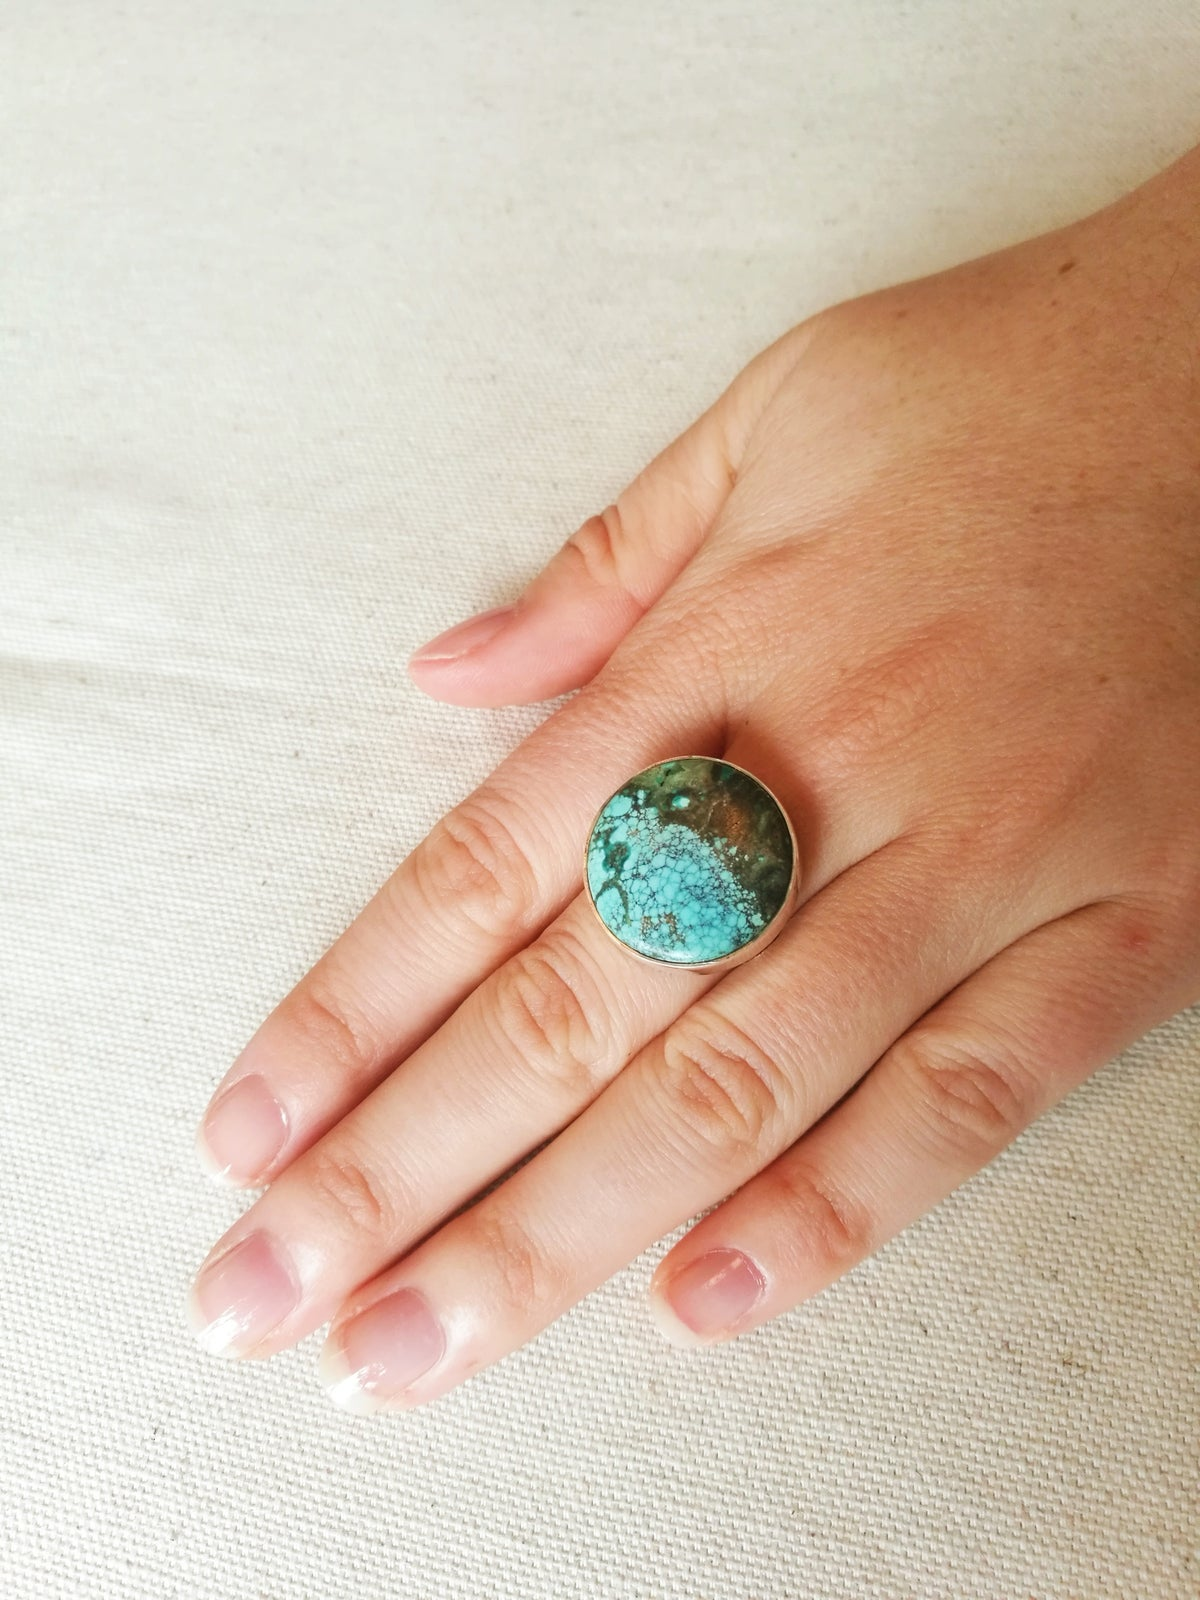 Image of Bague #110 turquoise du tibet naturelle - Taille 52